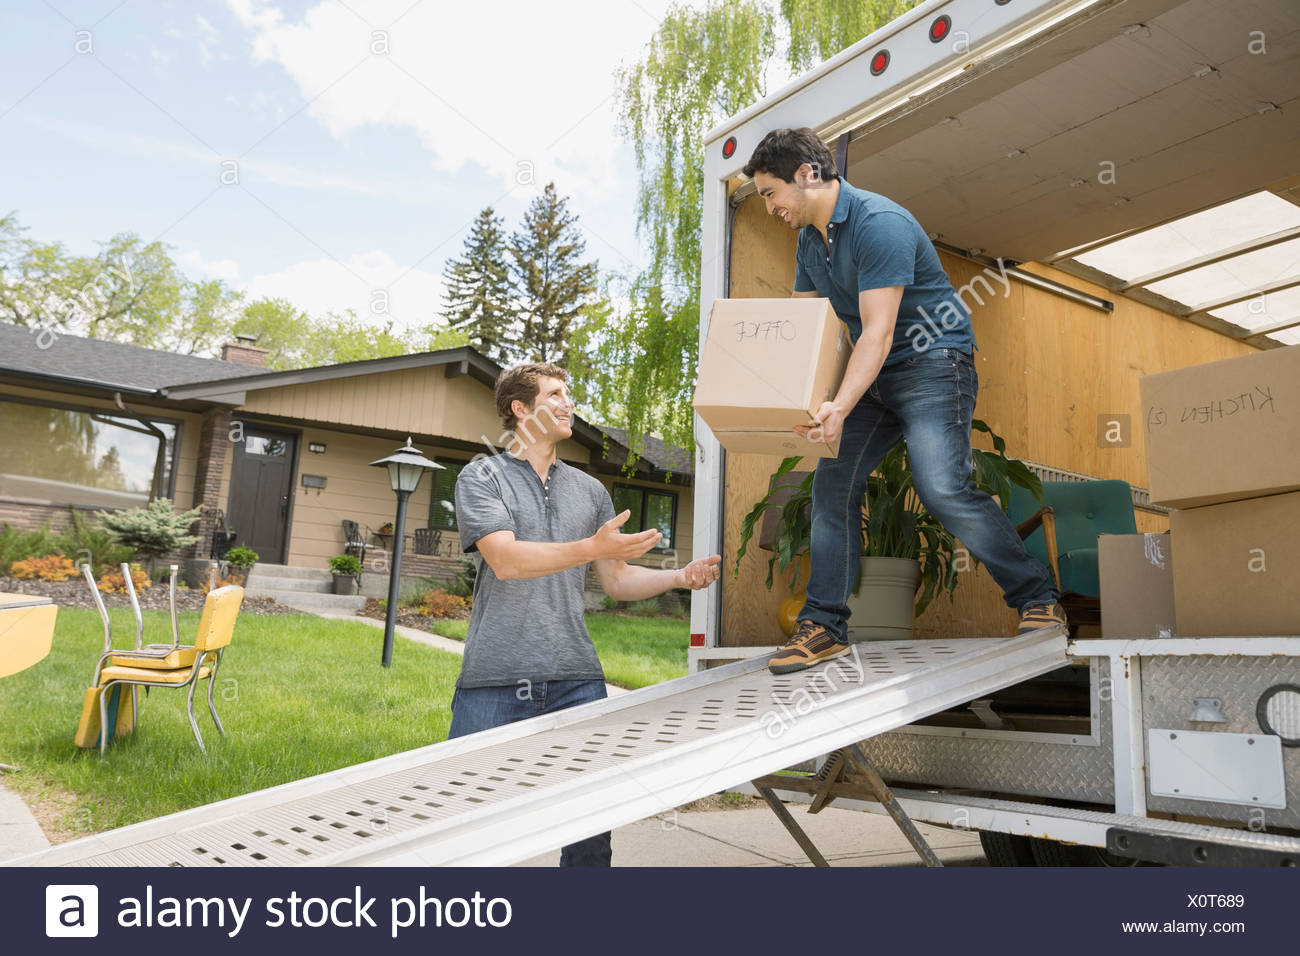 Men unloading boxes from moving van - Stock Image